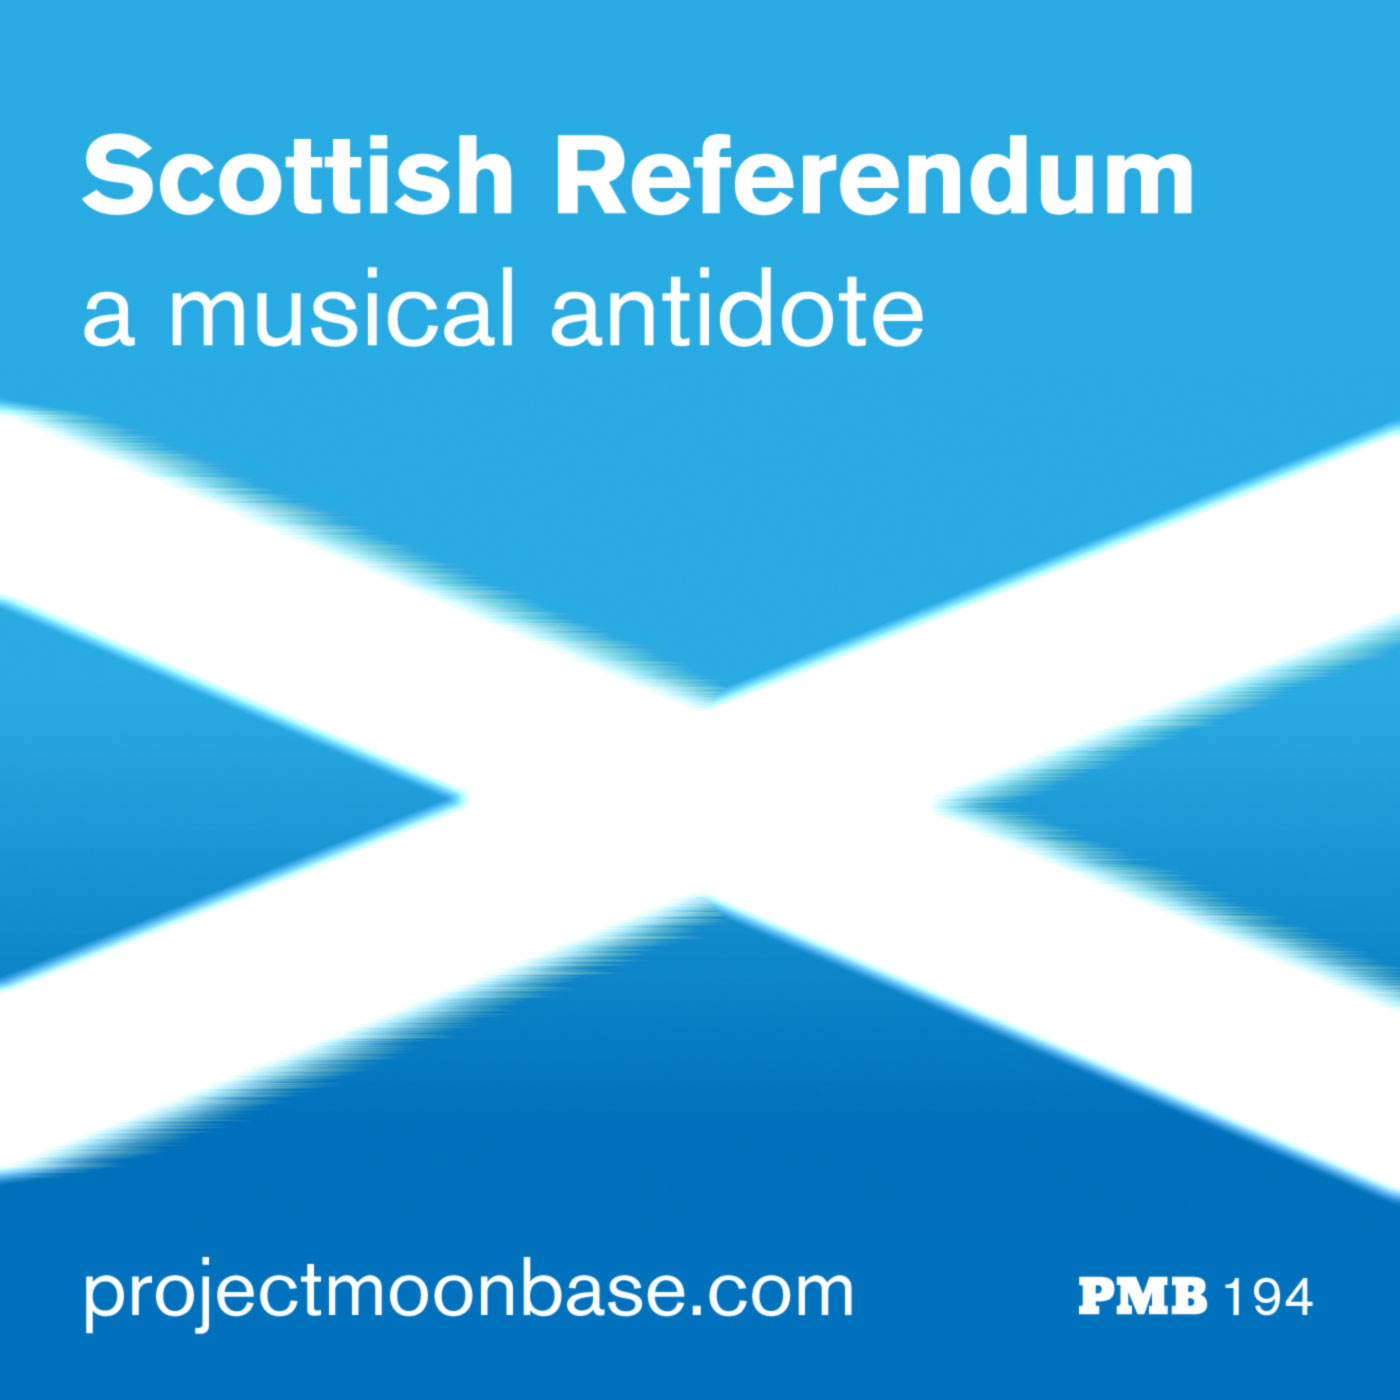 PMB194: The Scottish Referendum - A Musical Antidote